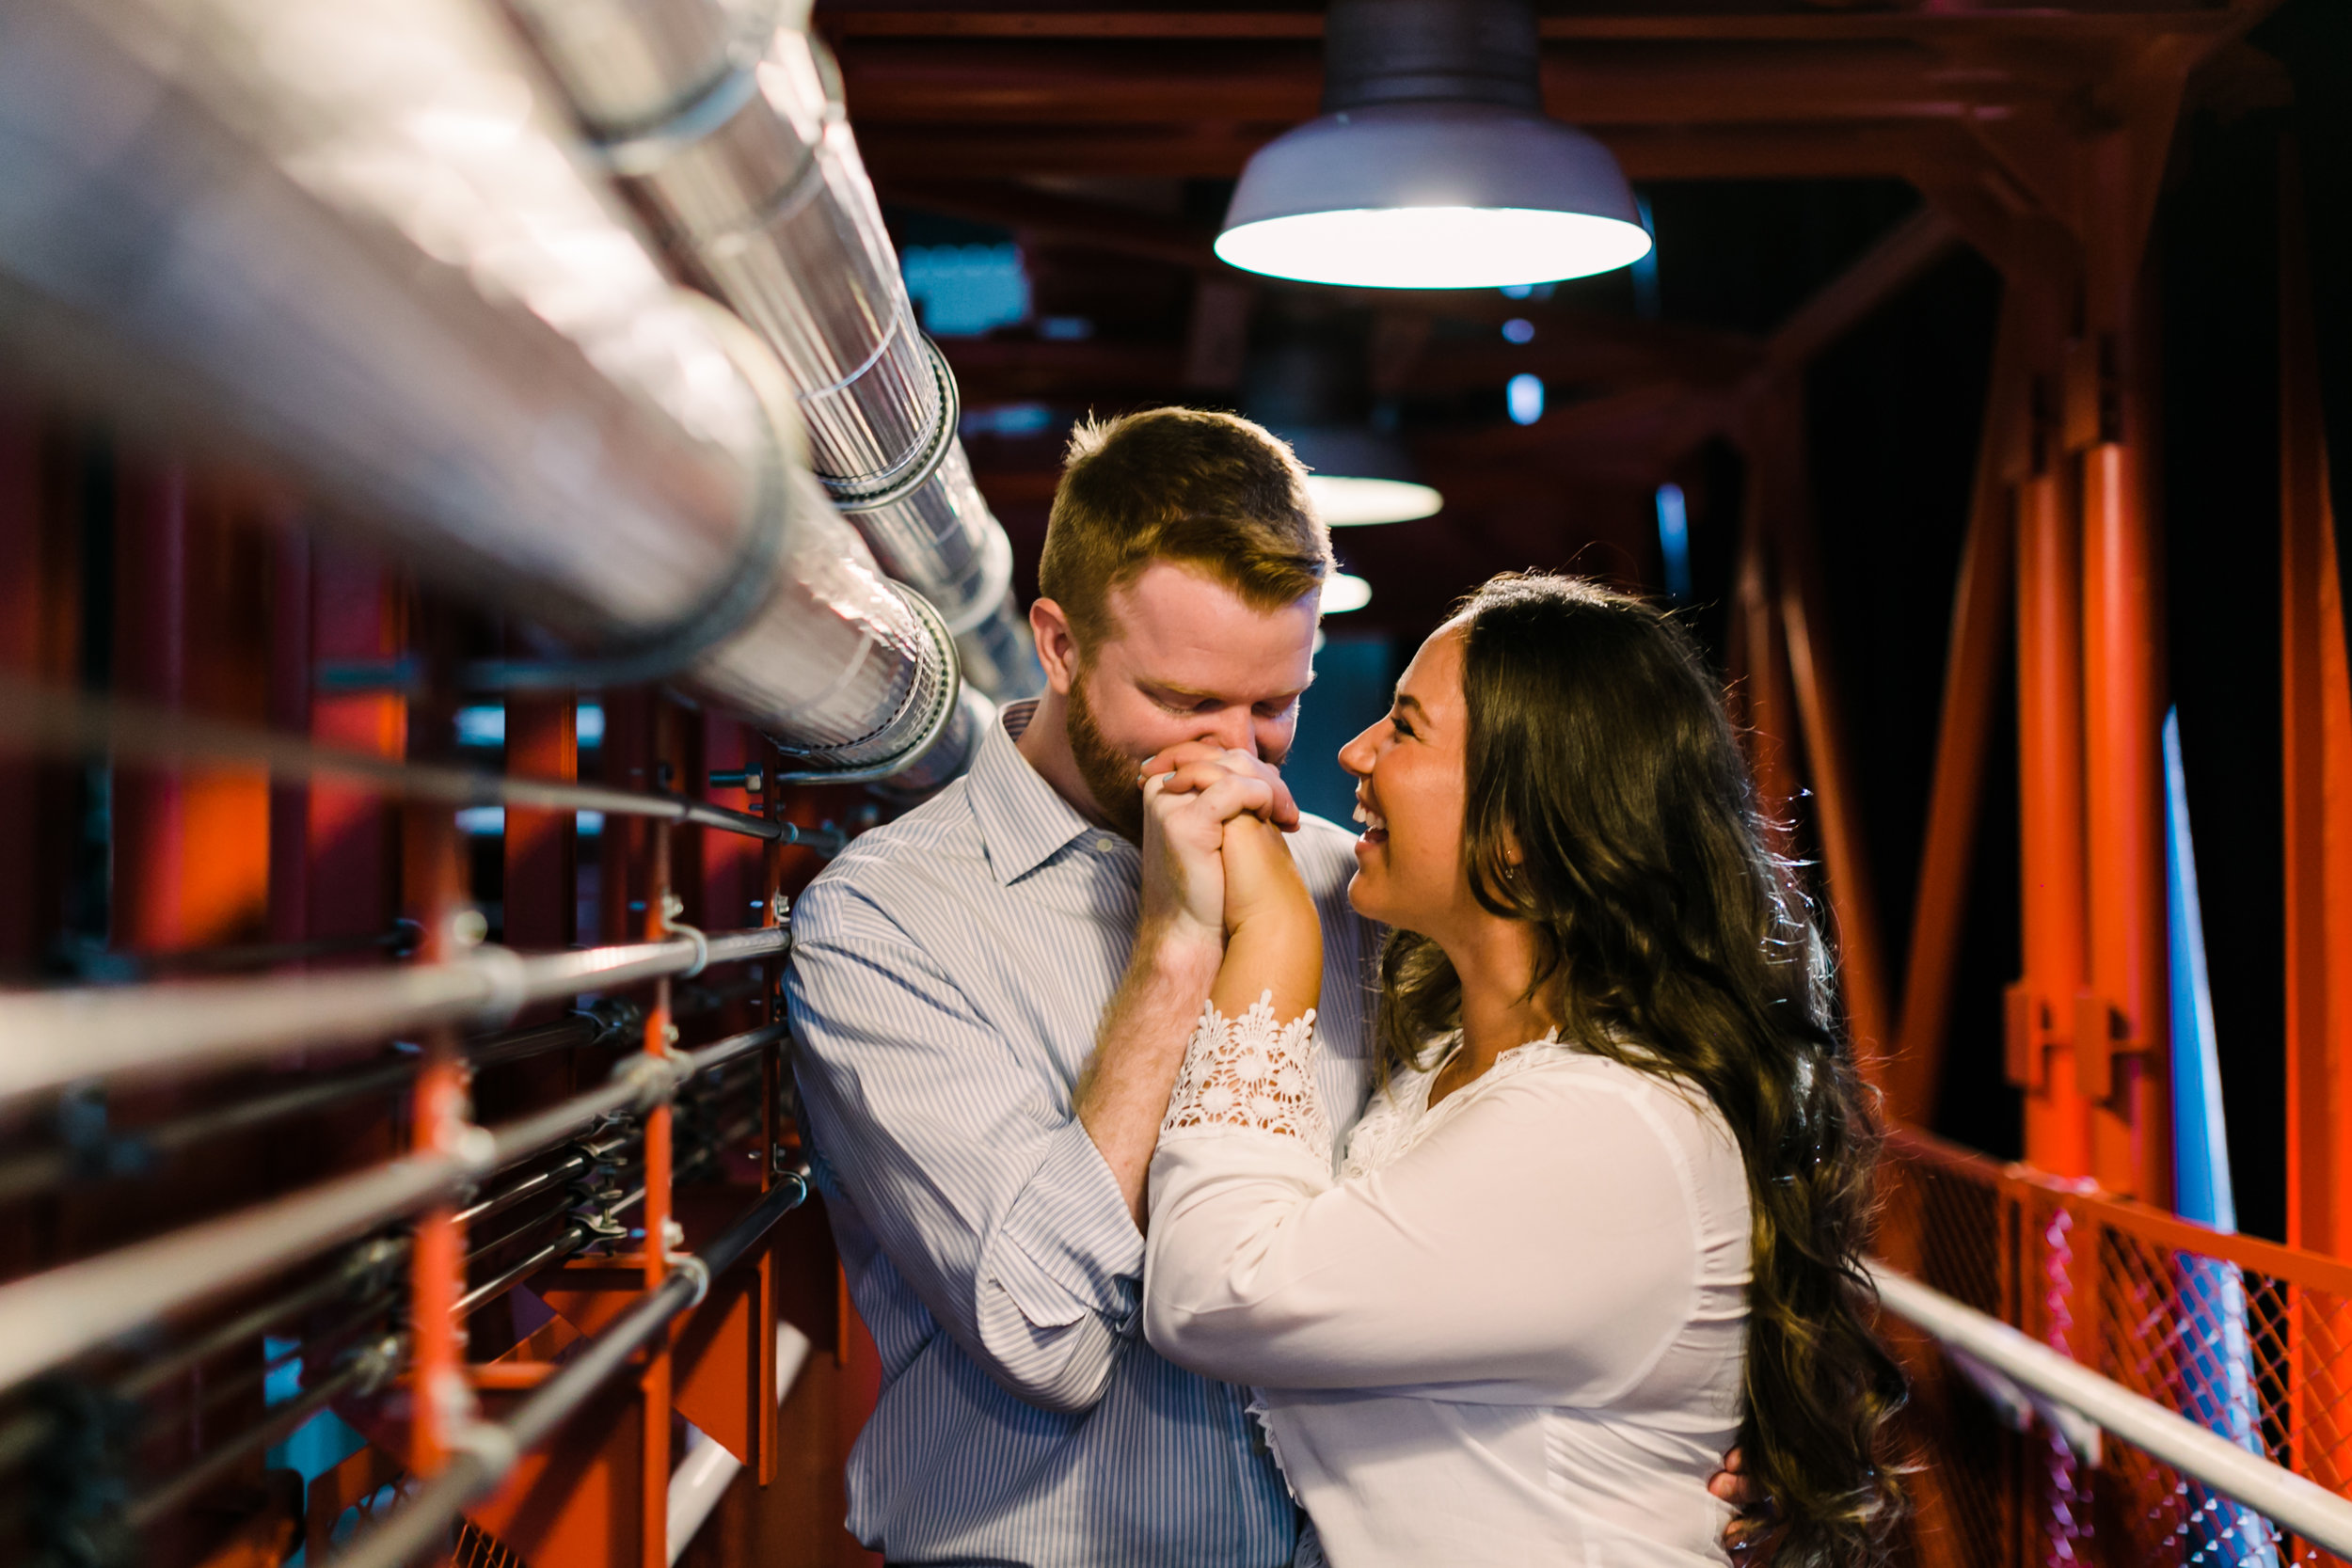 huntsville+alabama+rocket and space center + engagement (22 of 64).jpg